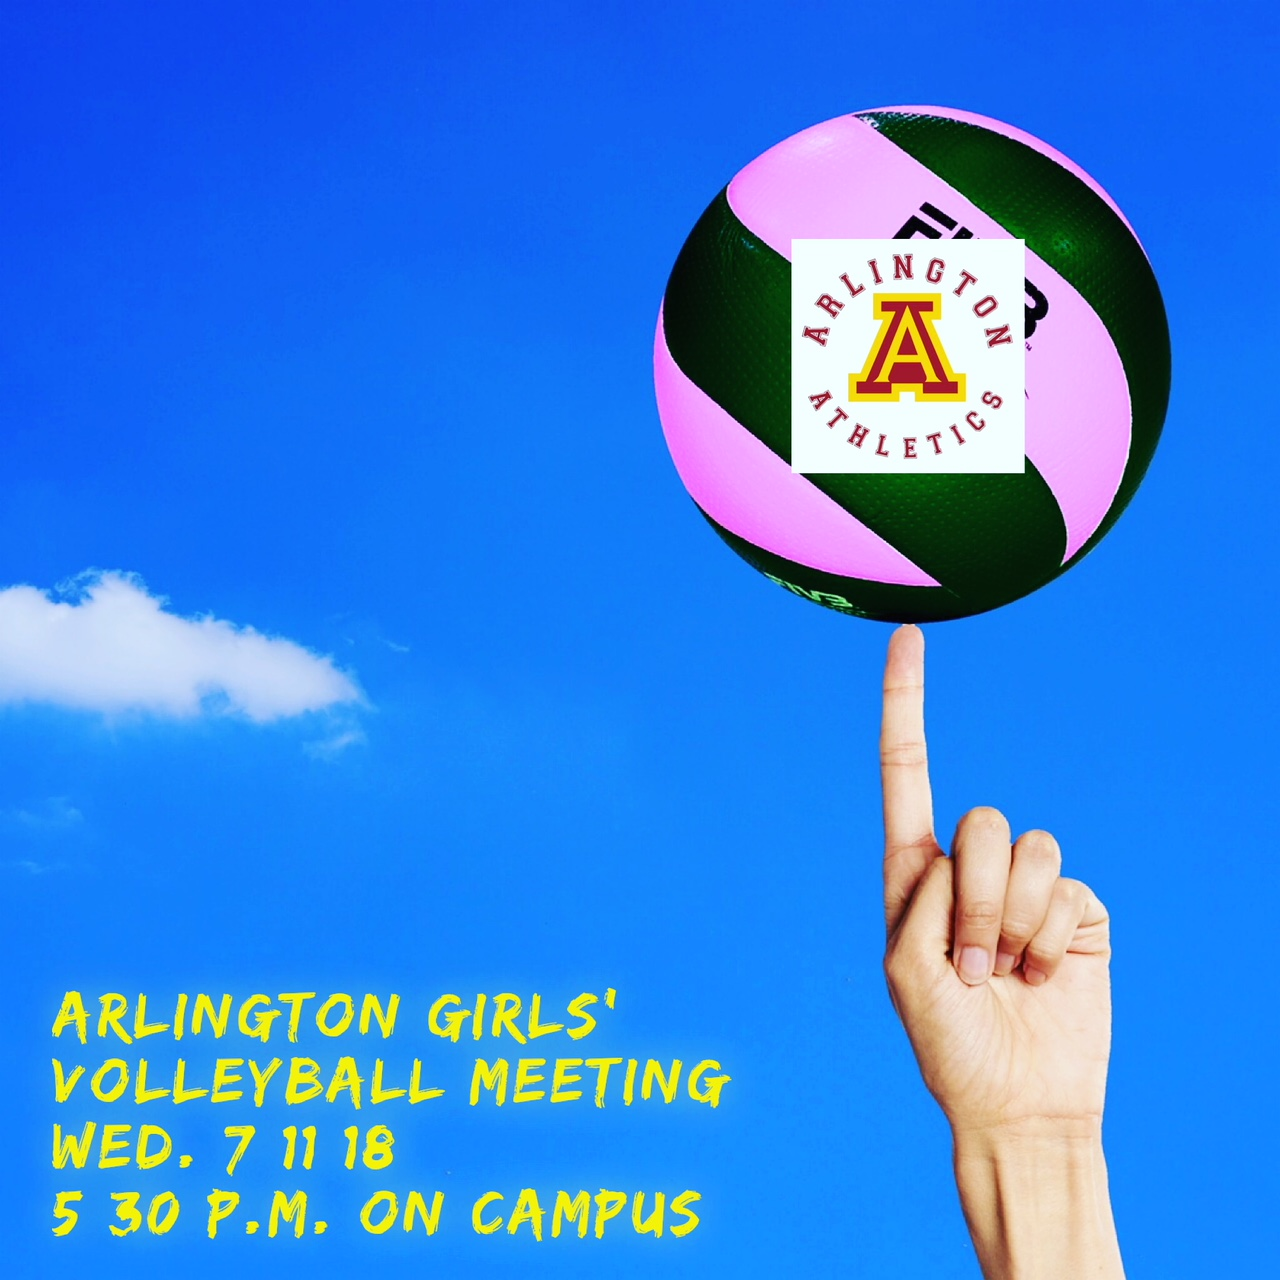 Arlington Girls Volleyball Meeting 5:30 p.m. on Wednesday, 7/11/2018 on campus.